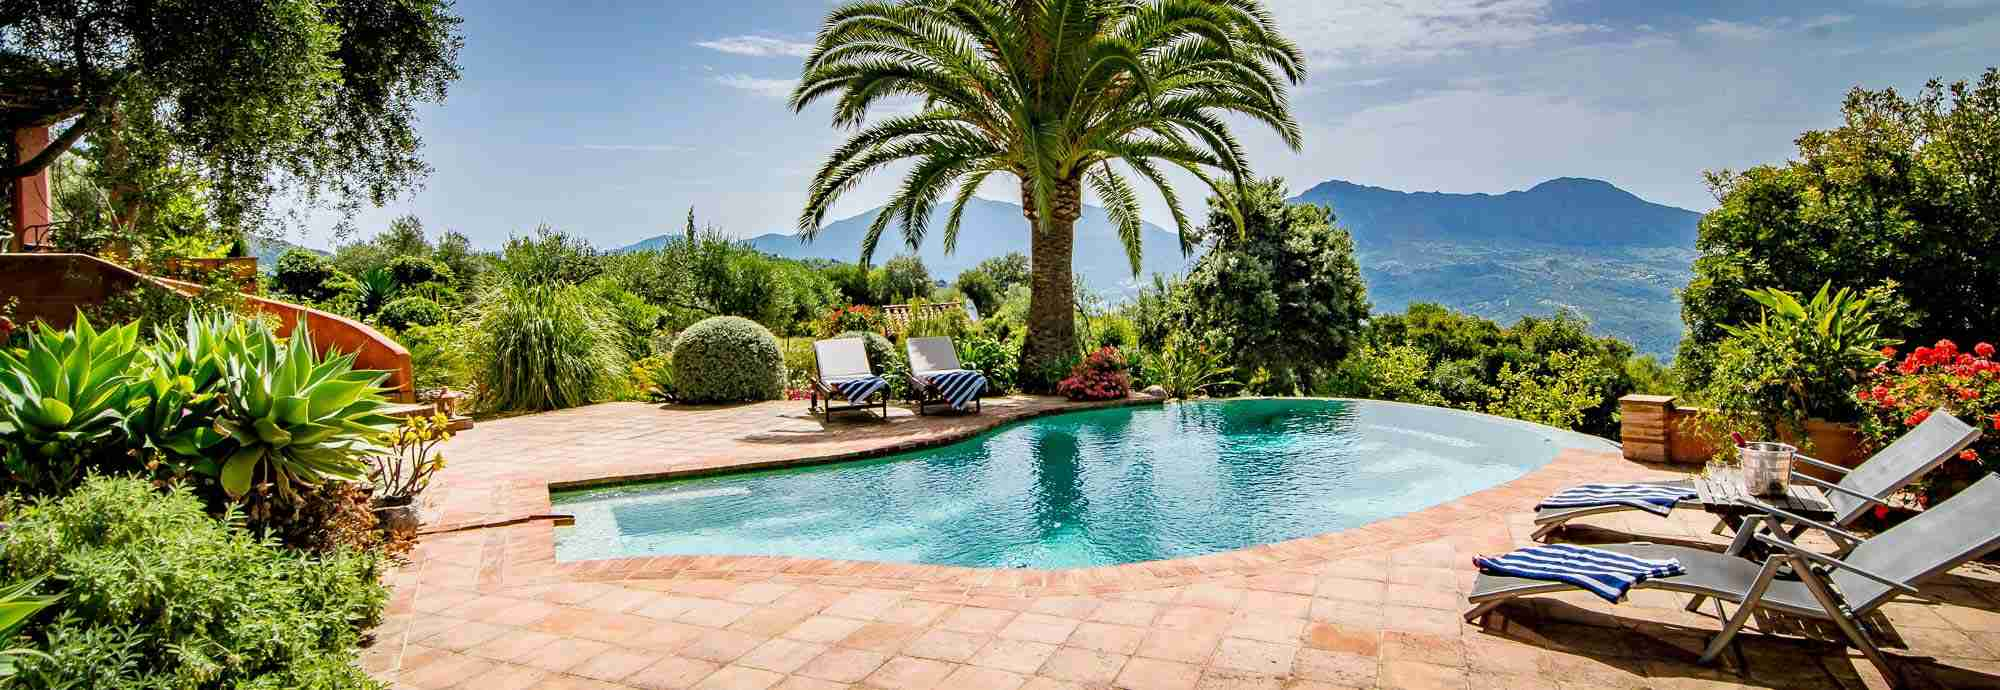 Villas In Spain With Pools Selected Self Catering Holidays In Spain